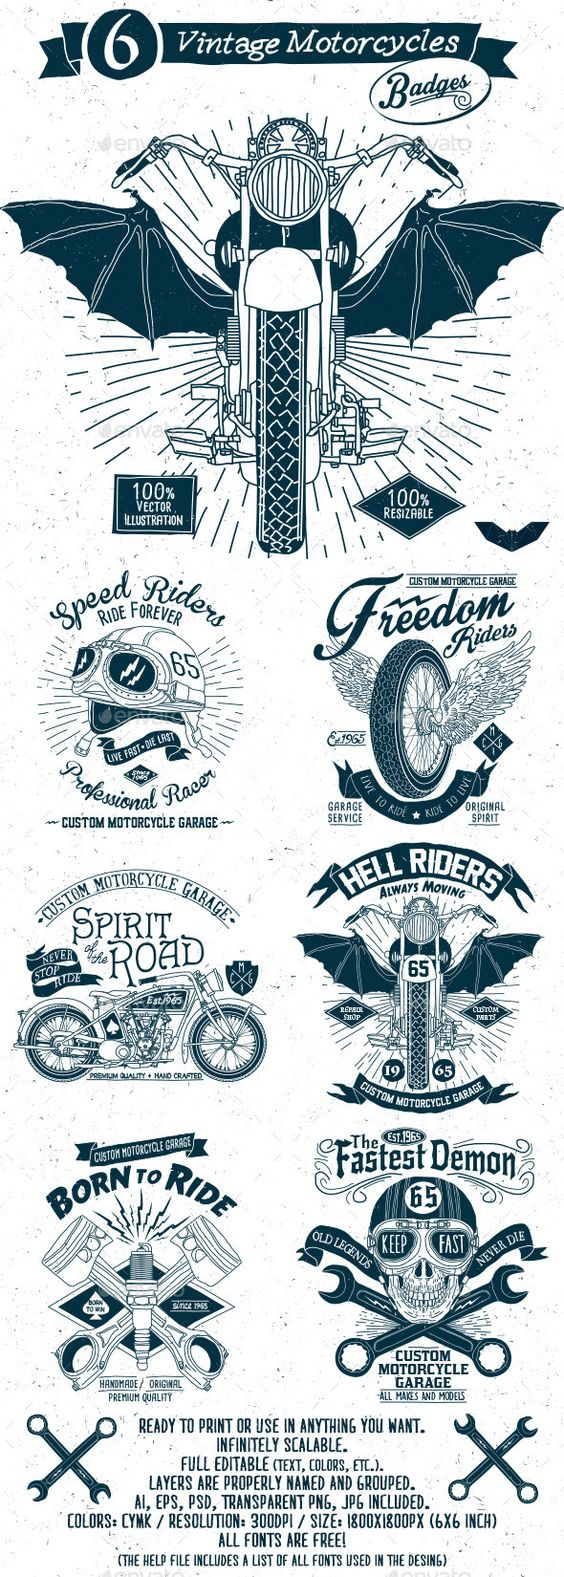 6 Vintage Motorcycles Badges #design #badges Download: